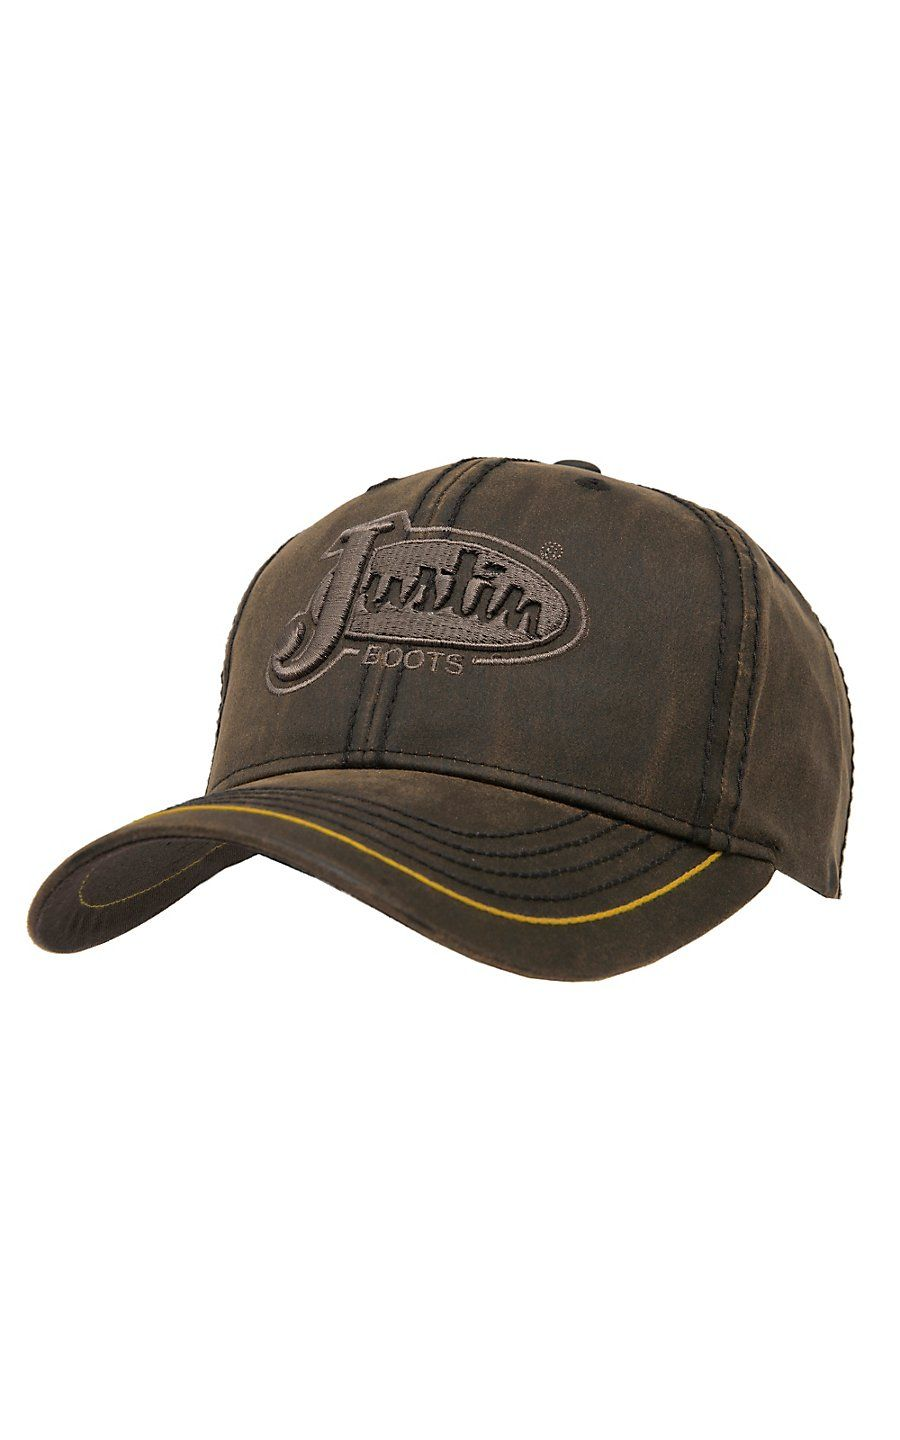 9f5e6e7edd0 Justin Boots® Brown Oilcloth with Embroidered Logo Cap